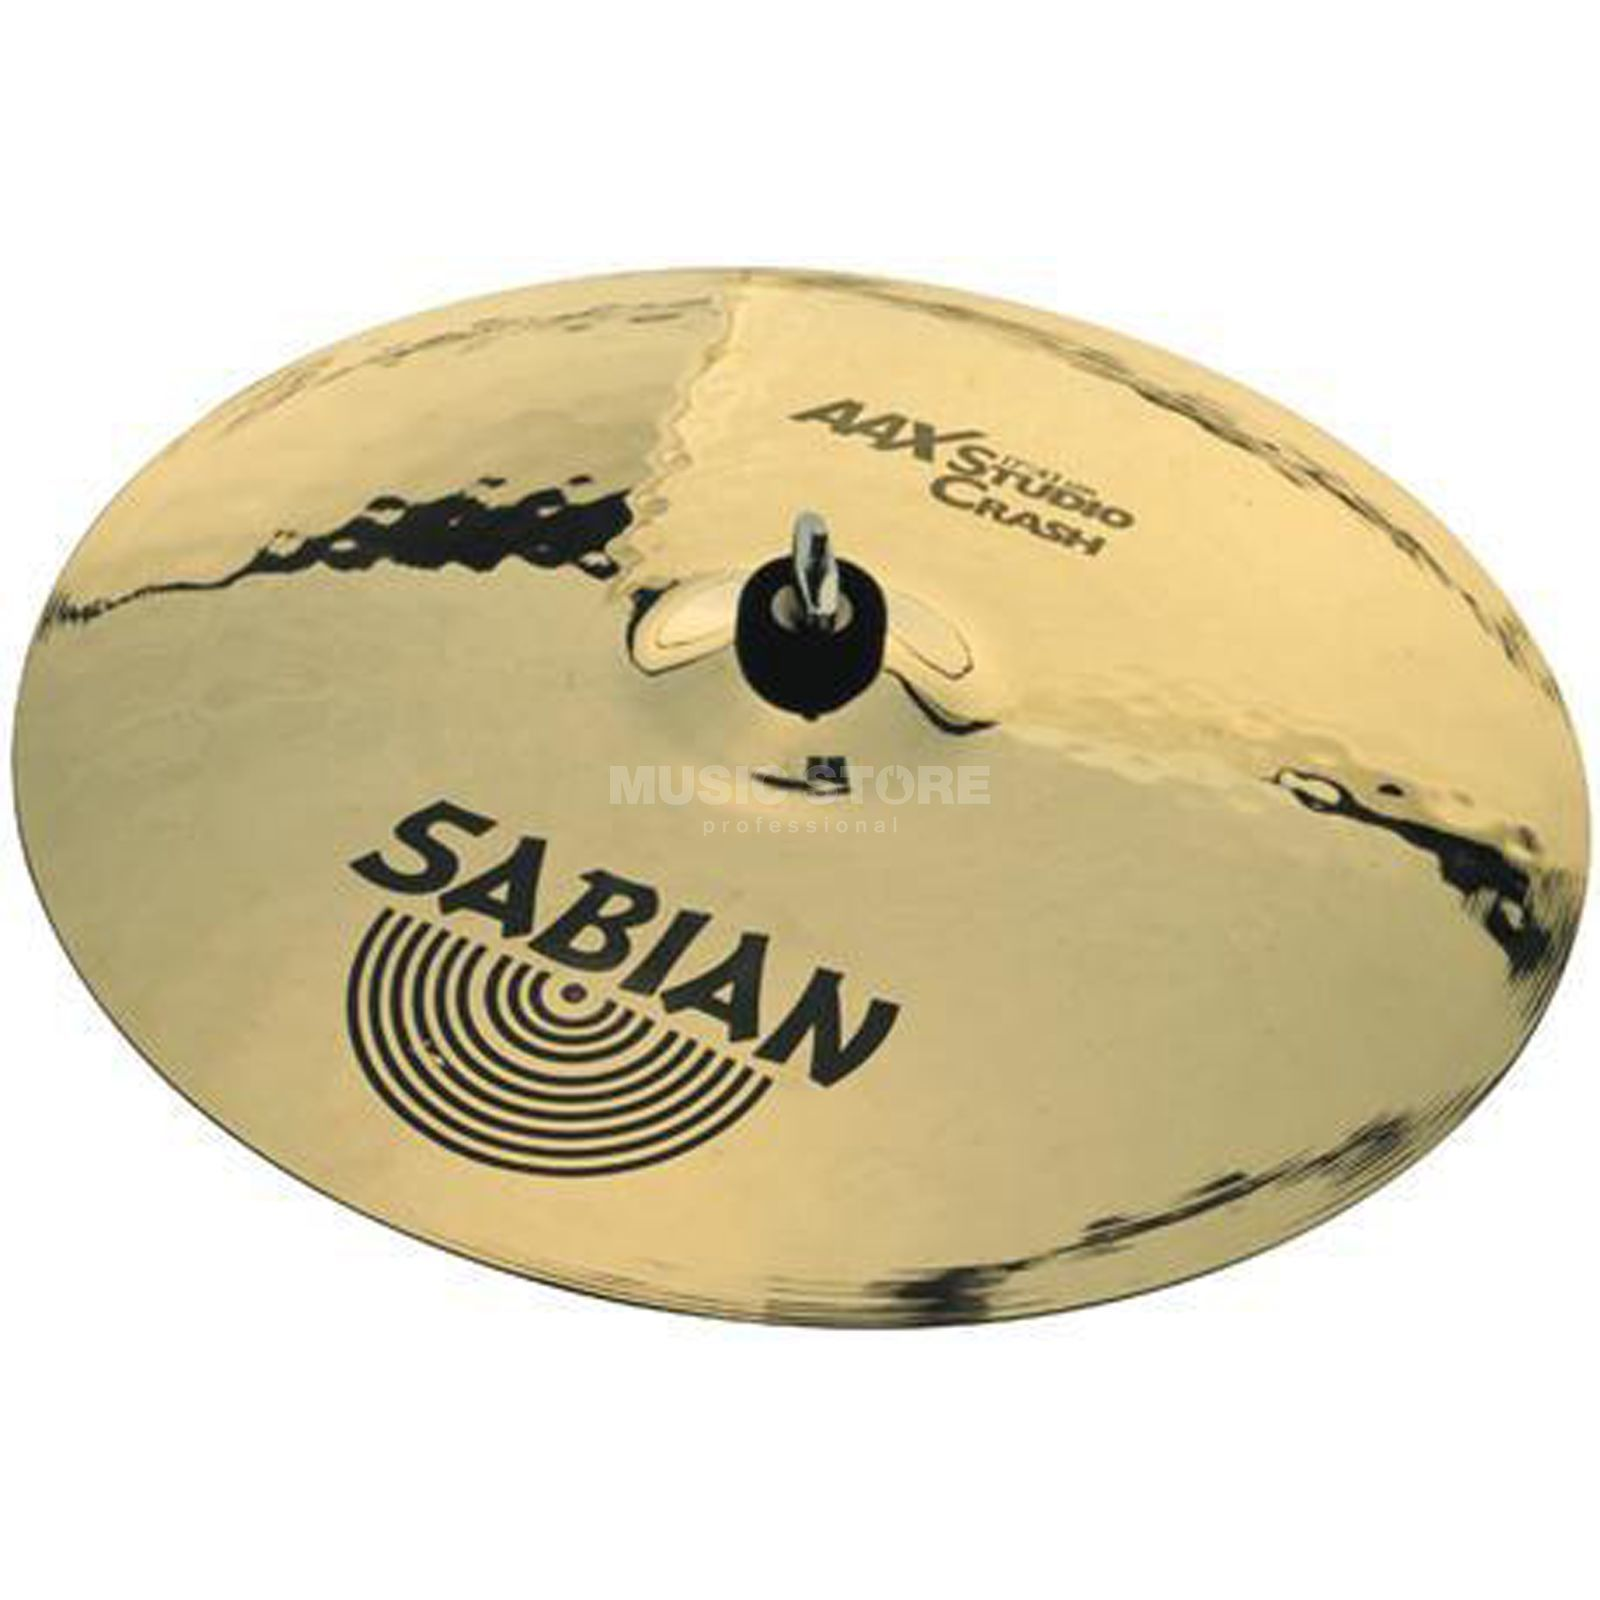 "Sabian AAX Studio Crash 18"", Brilliant Finish Productafbeelding"